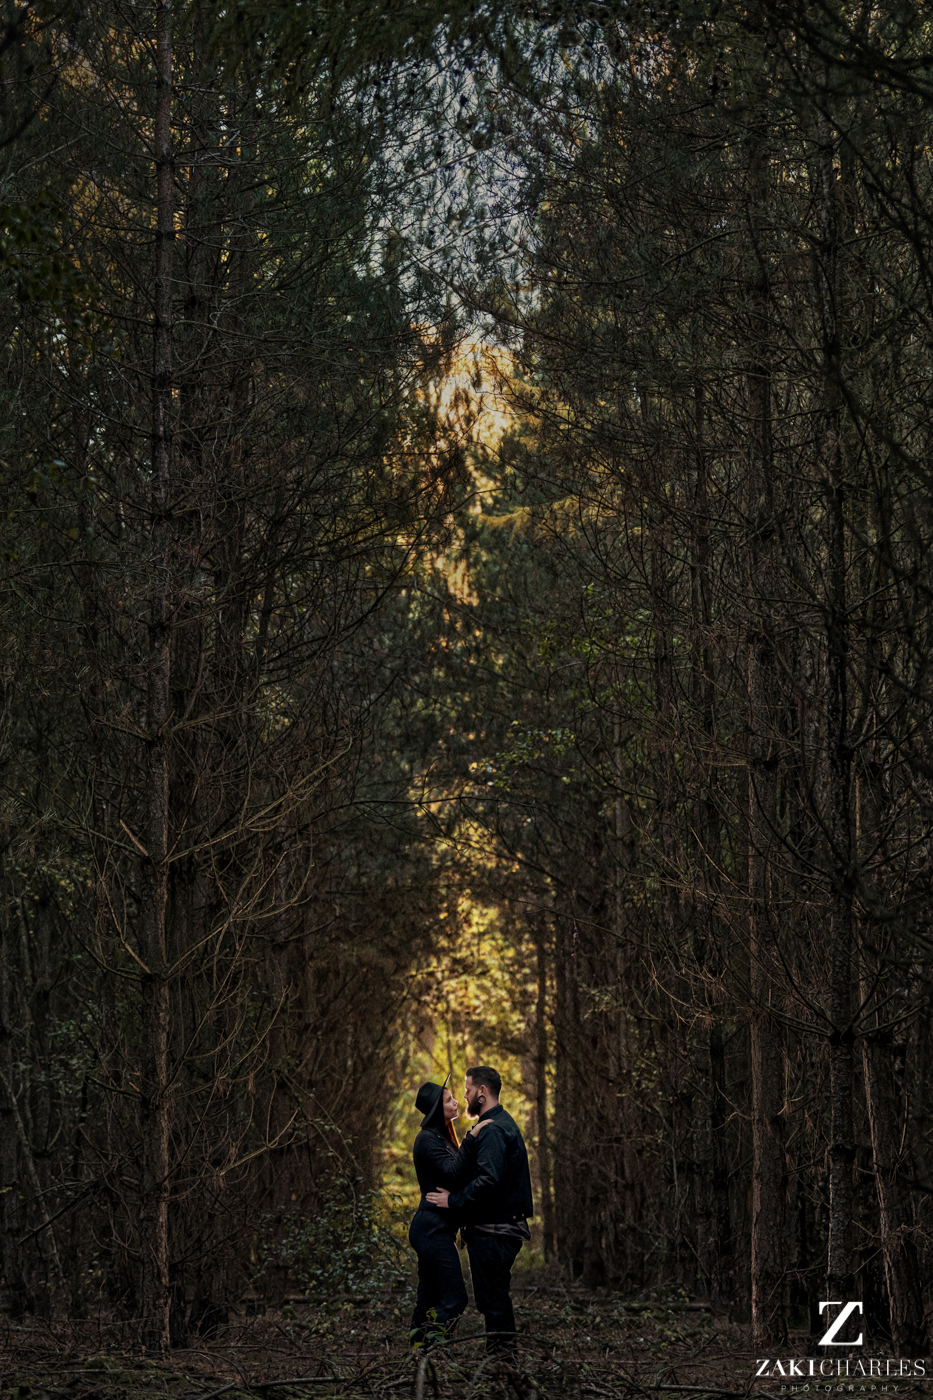 Black Park Engagement Session, Kirsty & Alex fine art photography 4